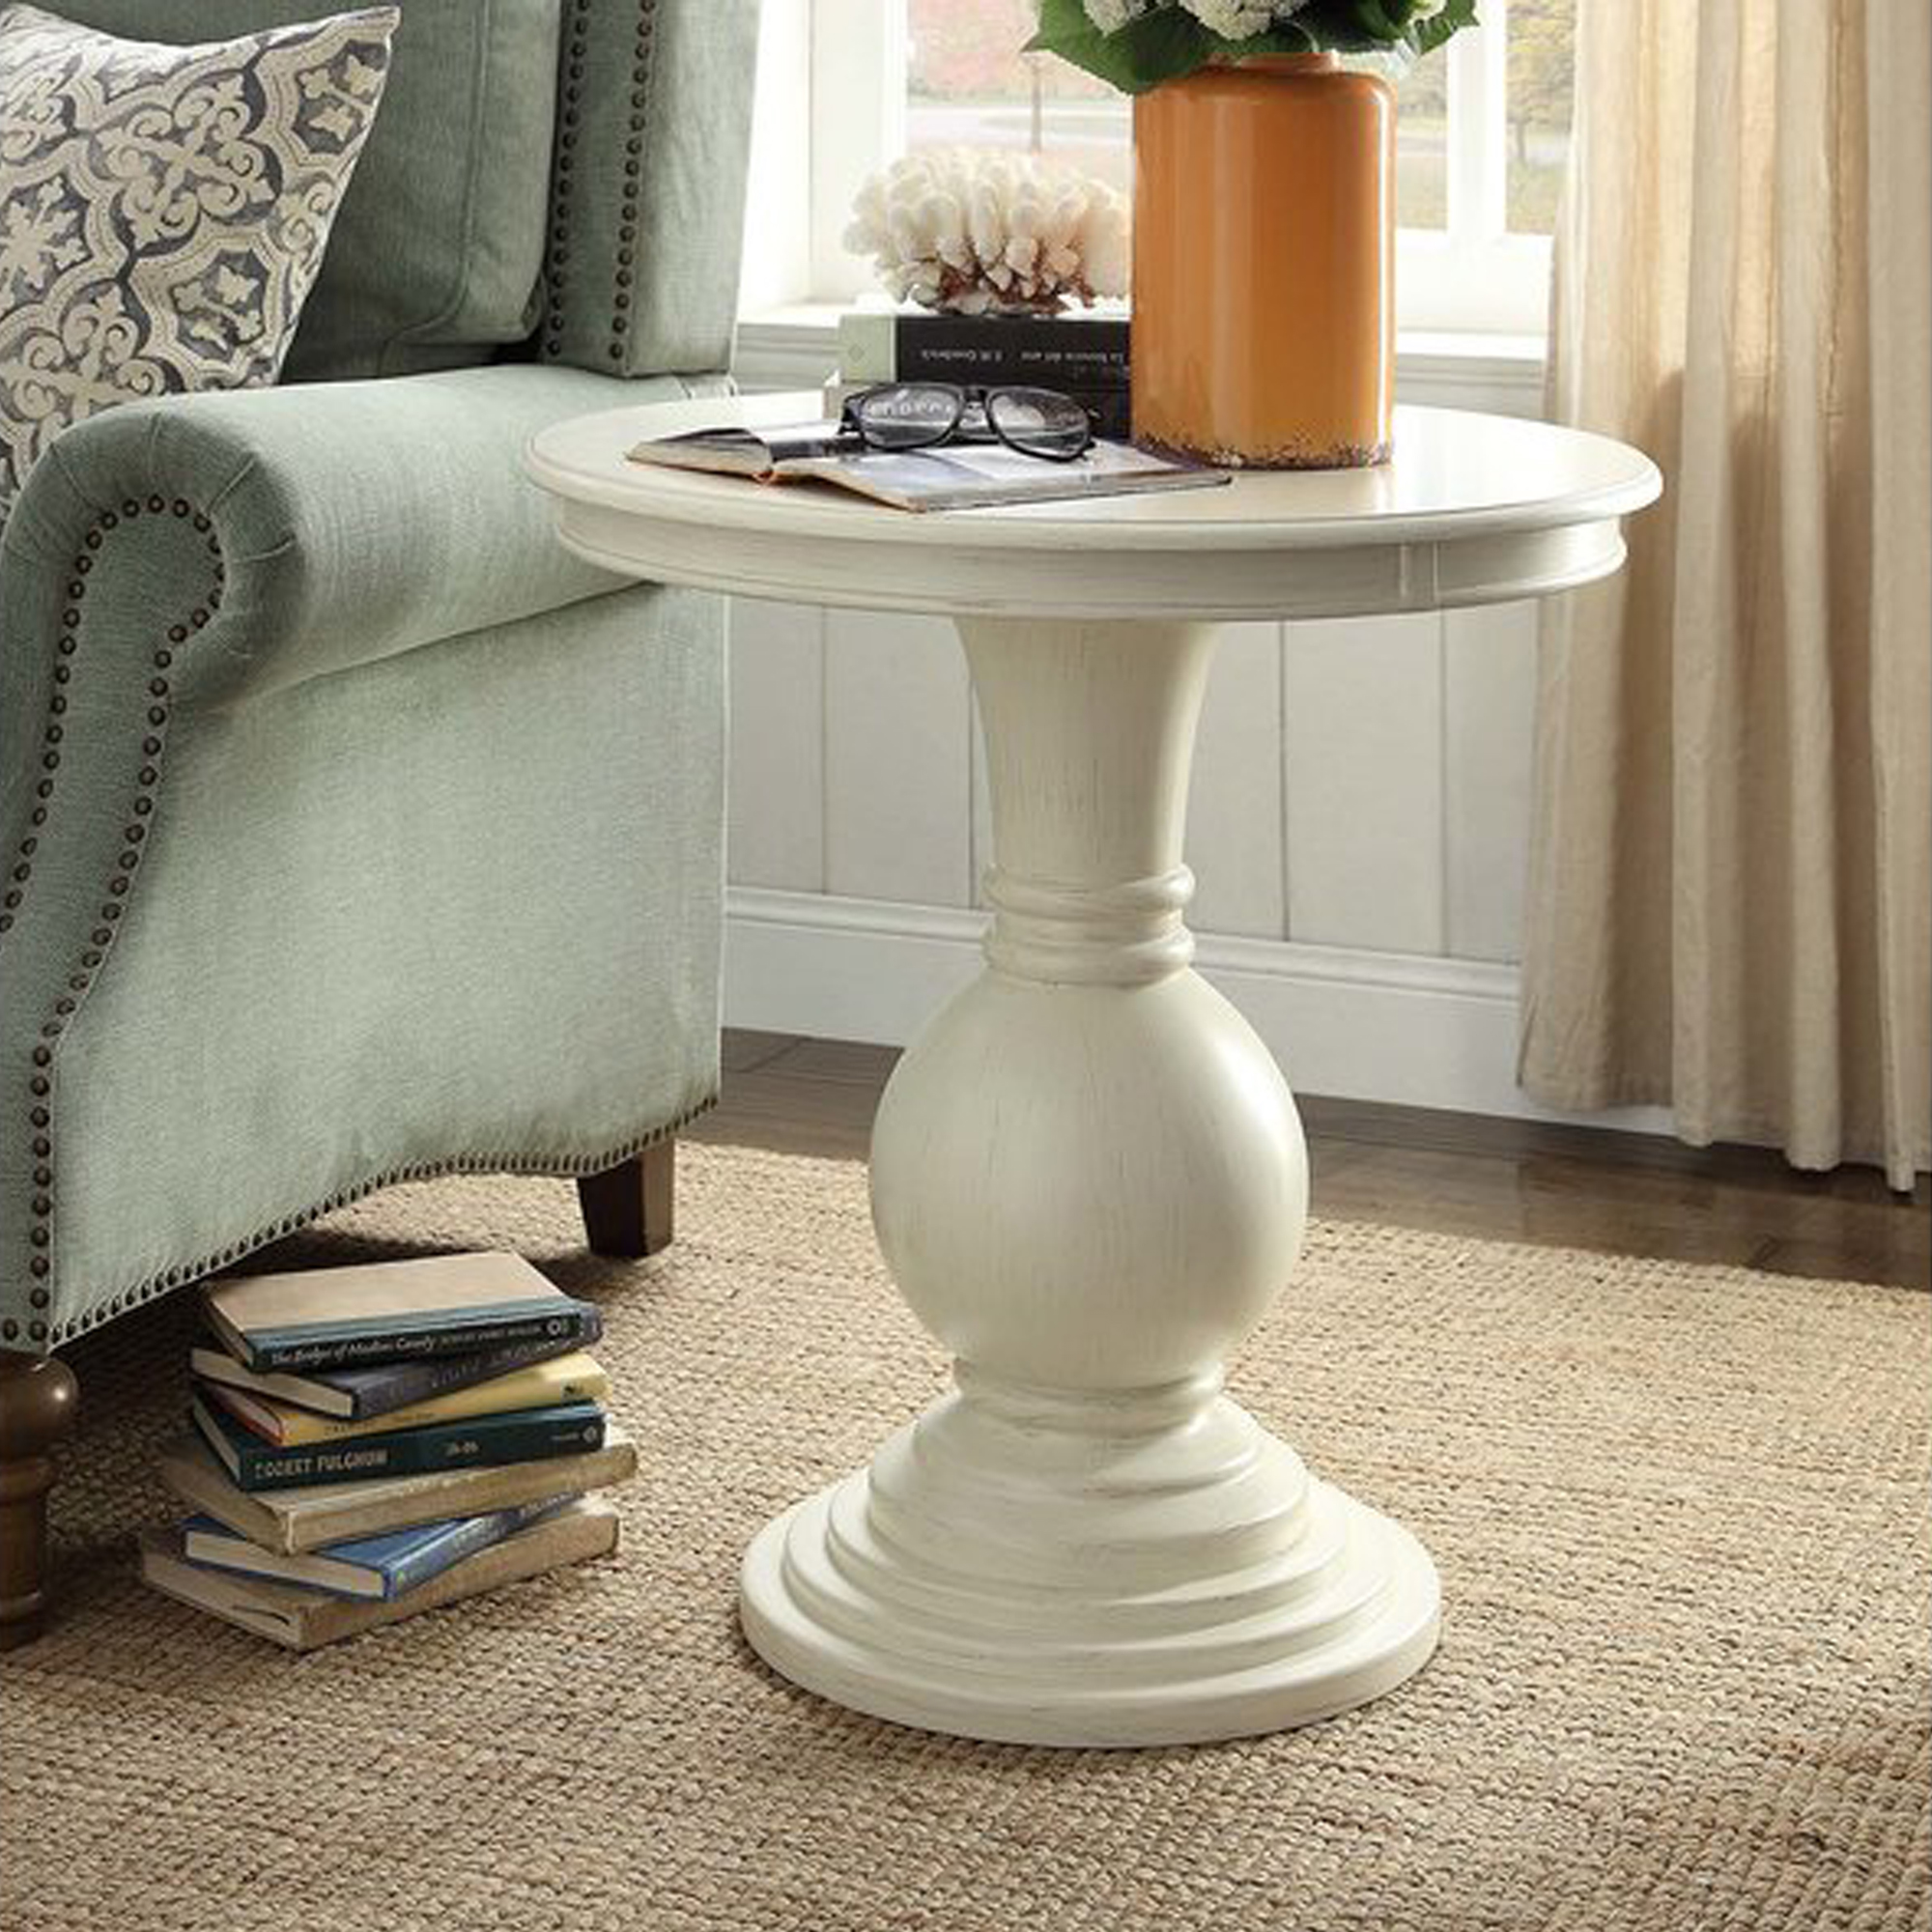 tall pedestal accent table design ideas round end tables side lamp for wrought iron small black distressed off white best accentuate your living mirrored cabinet teak outdoor